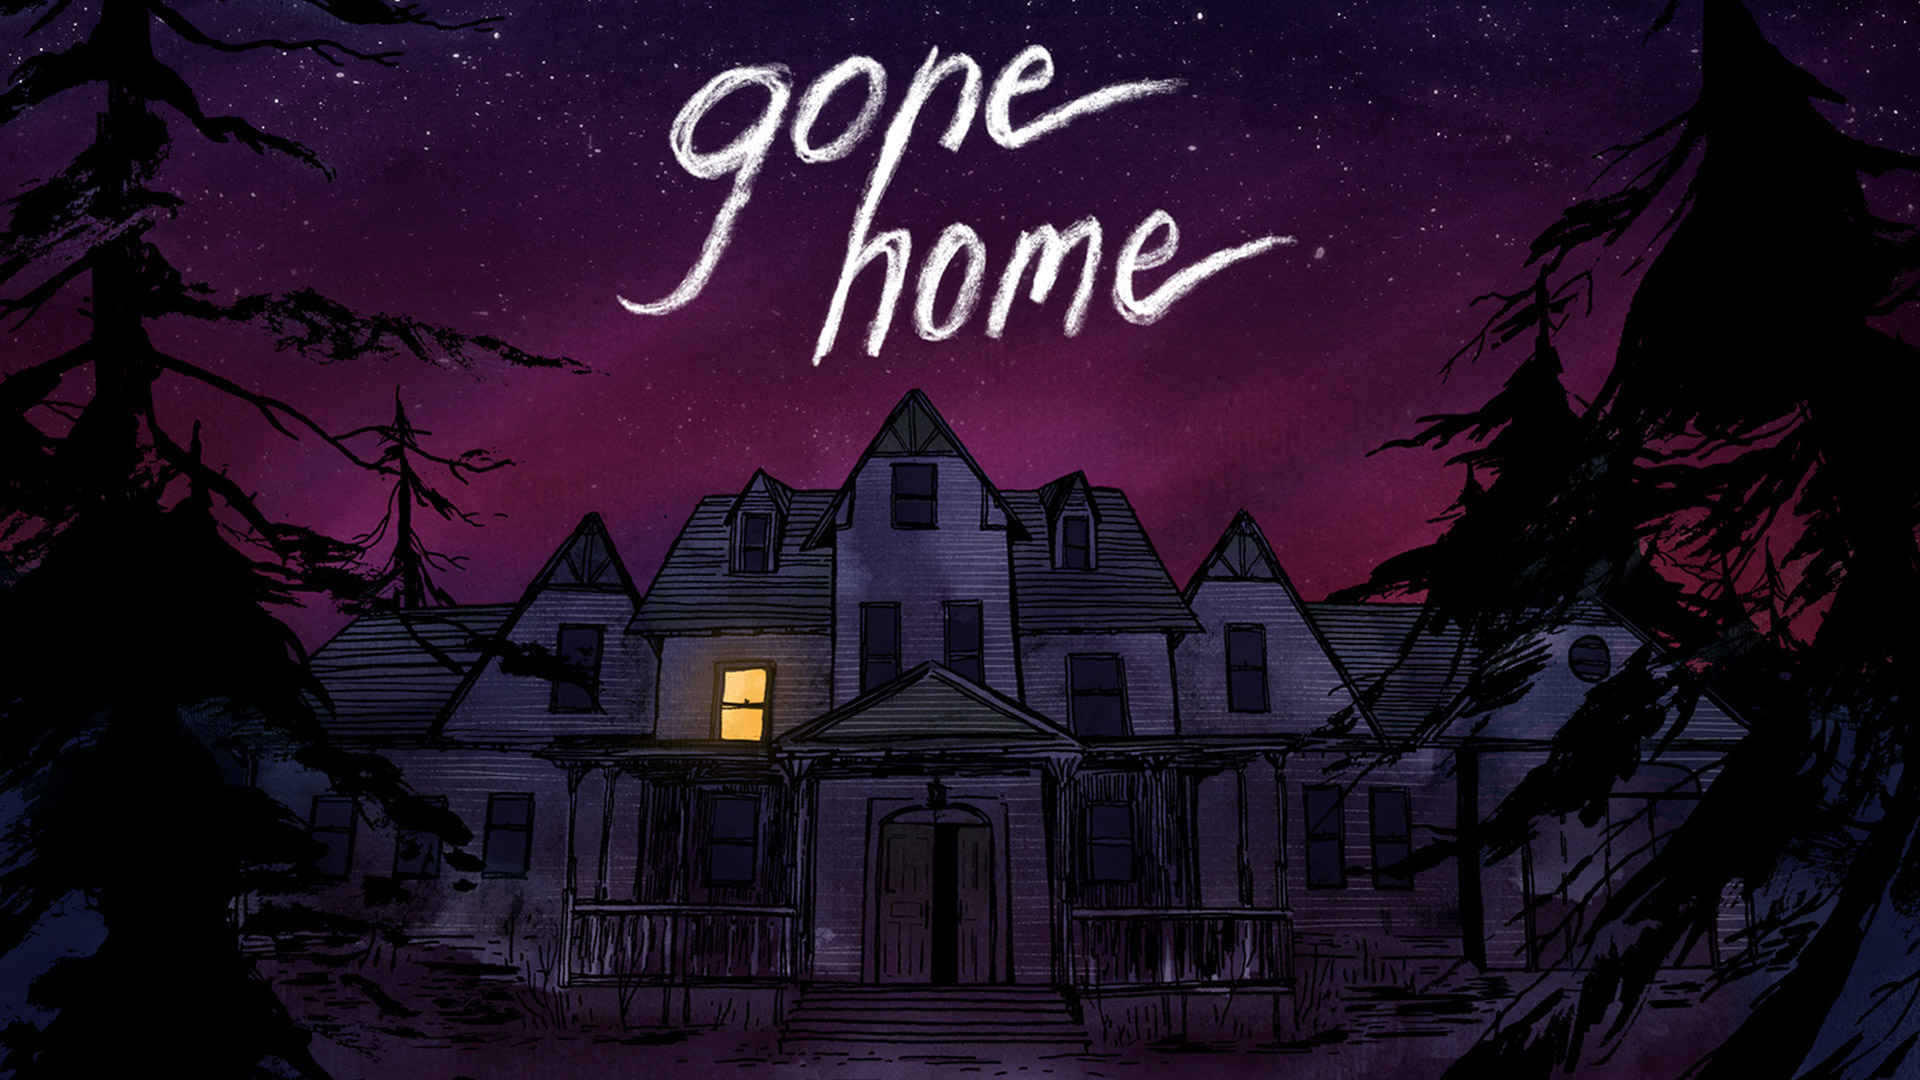 Free Gone Home Wallpaper in 1920x1080